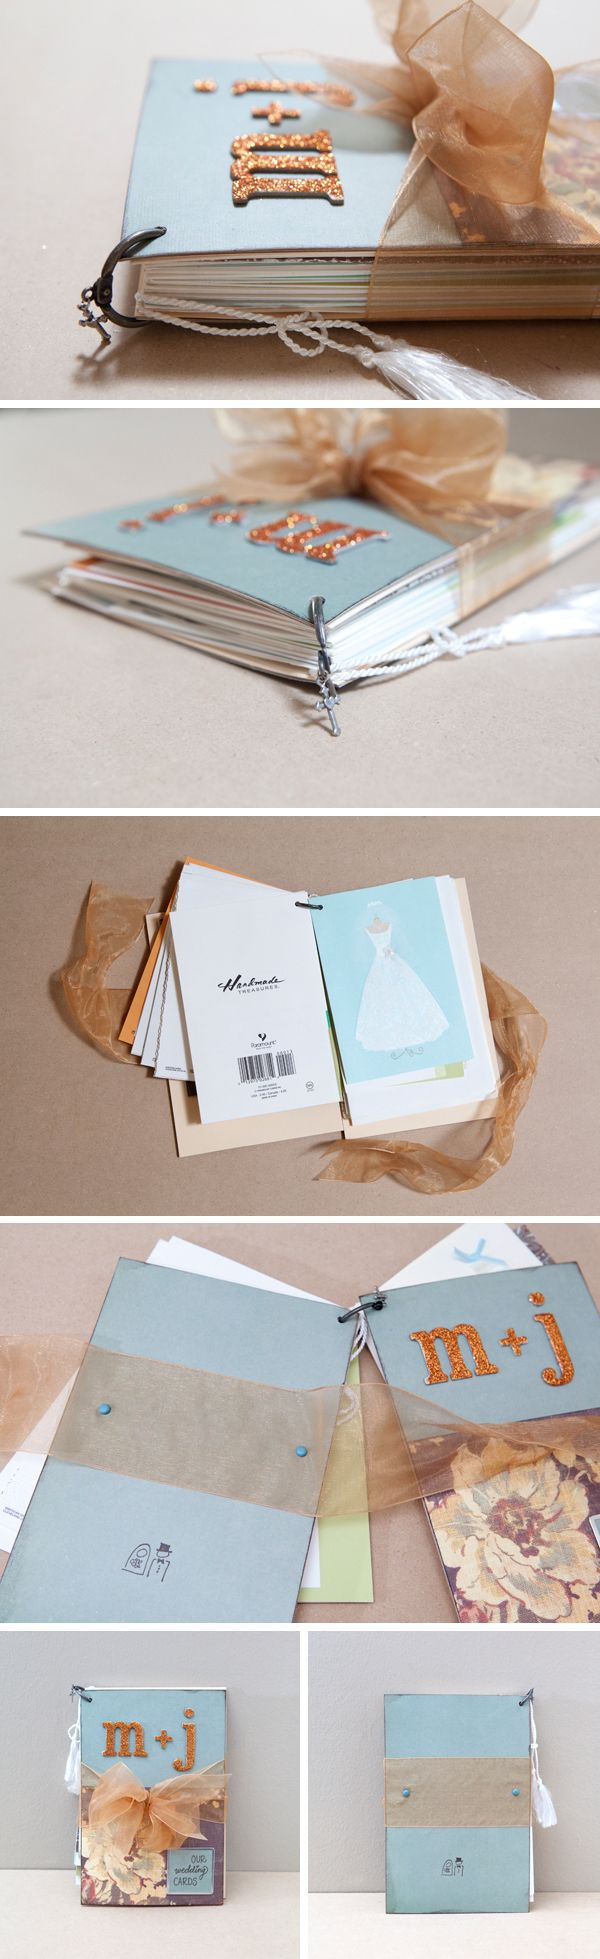 "Wedding card ""book"" or birthday or baby shower!- such a cute idea"